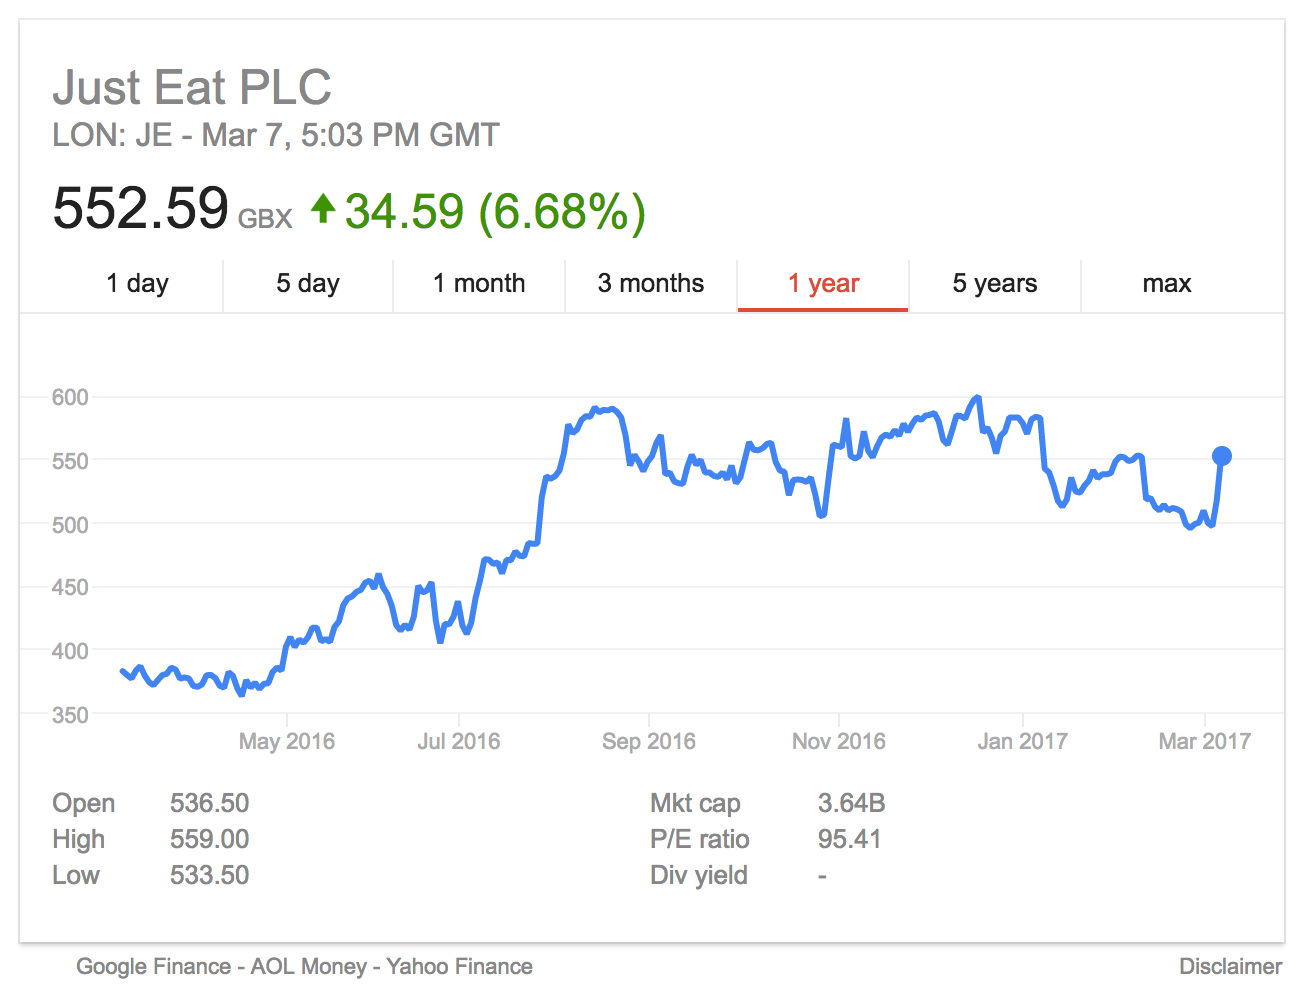 Just Eat share price March 2017